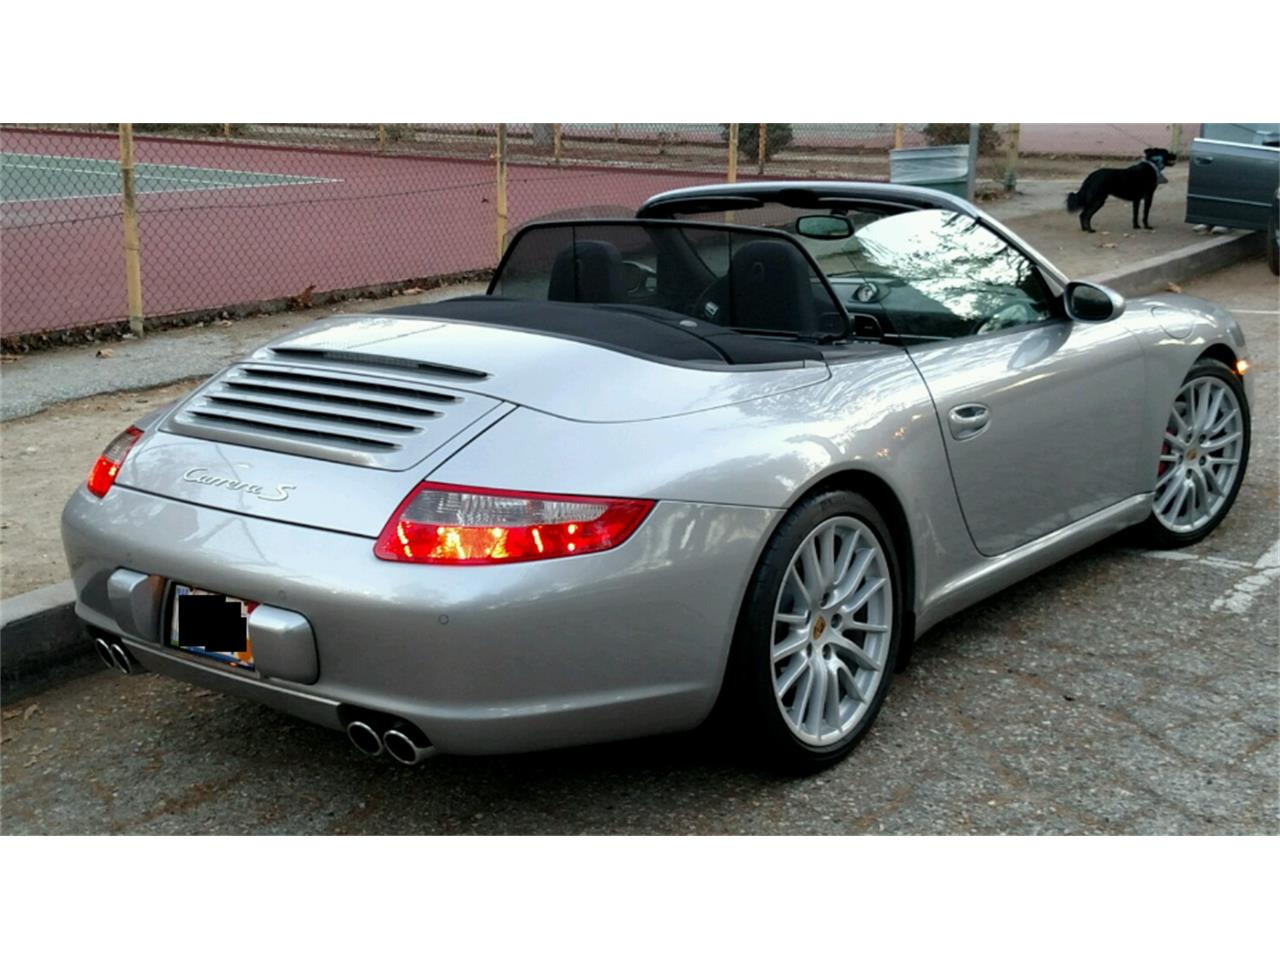 Large Picture of '06 Porsche 911 Carrera S located in Pasadena California - $40,000.00 Offered by a Private Seller - KJ68